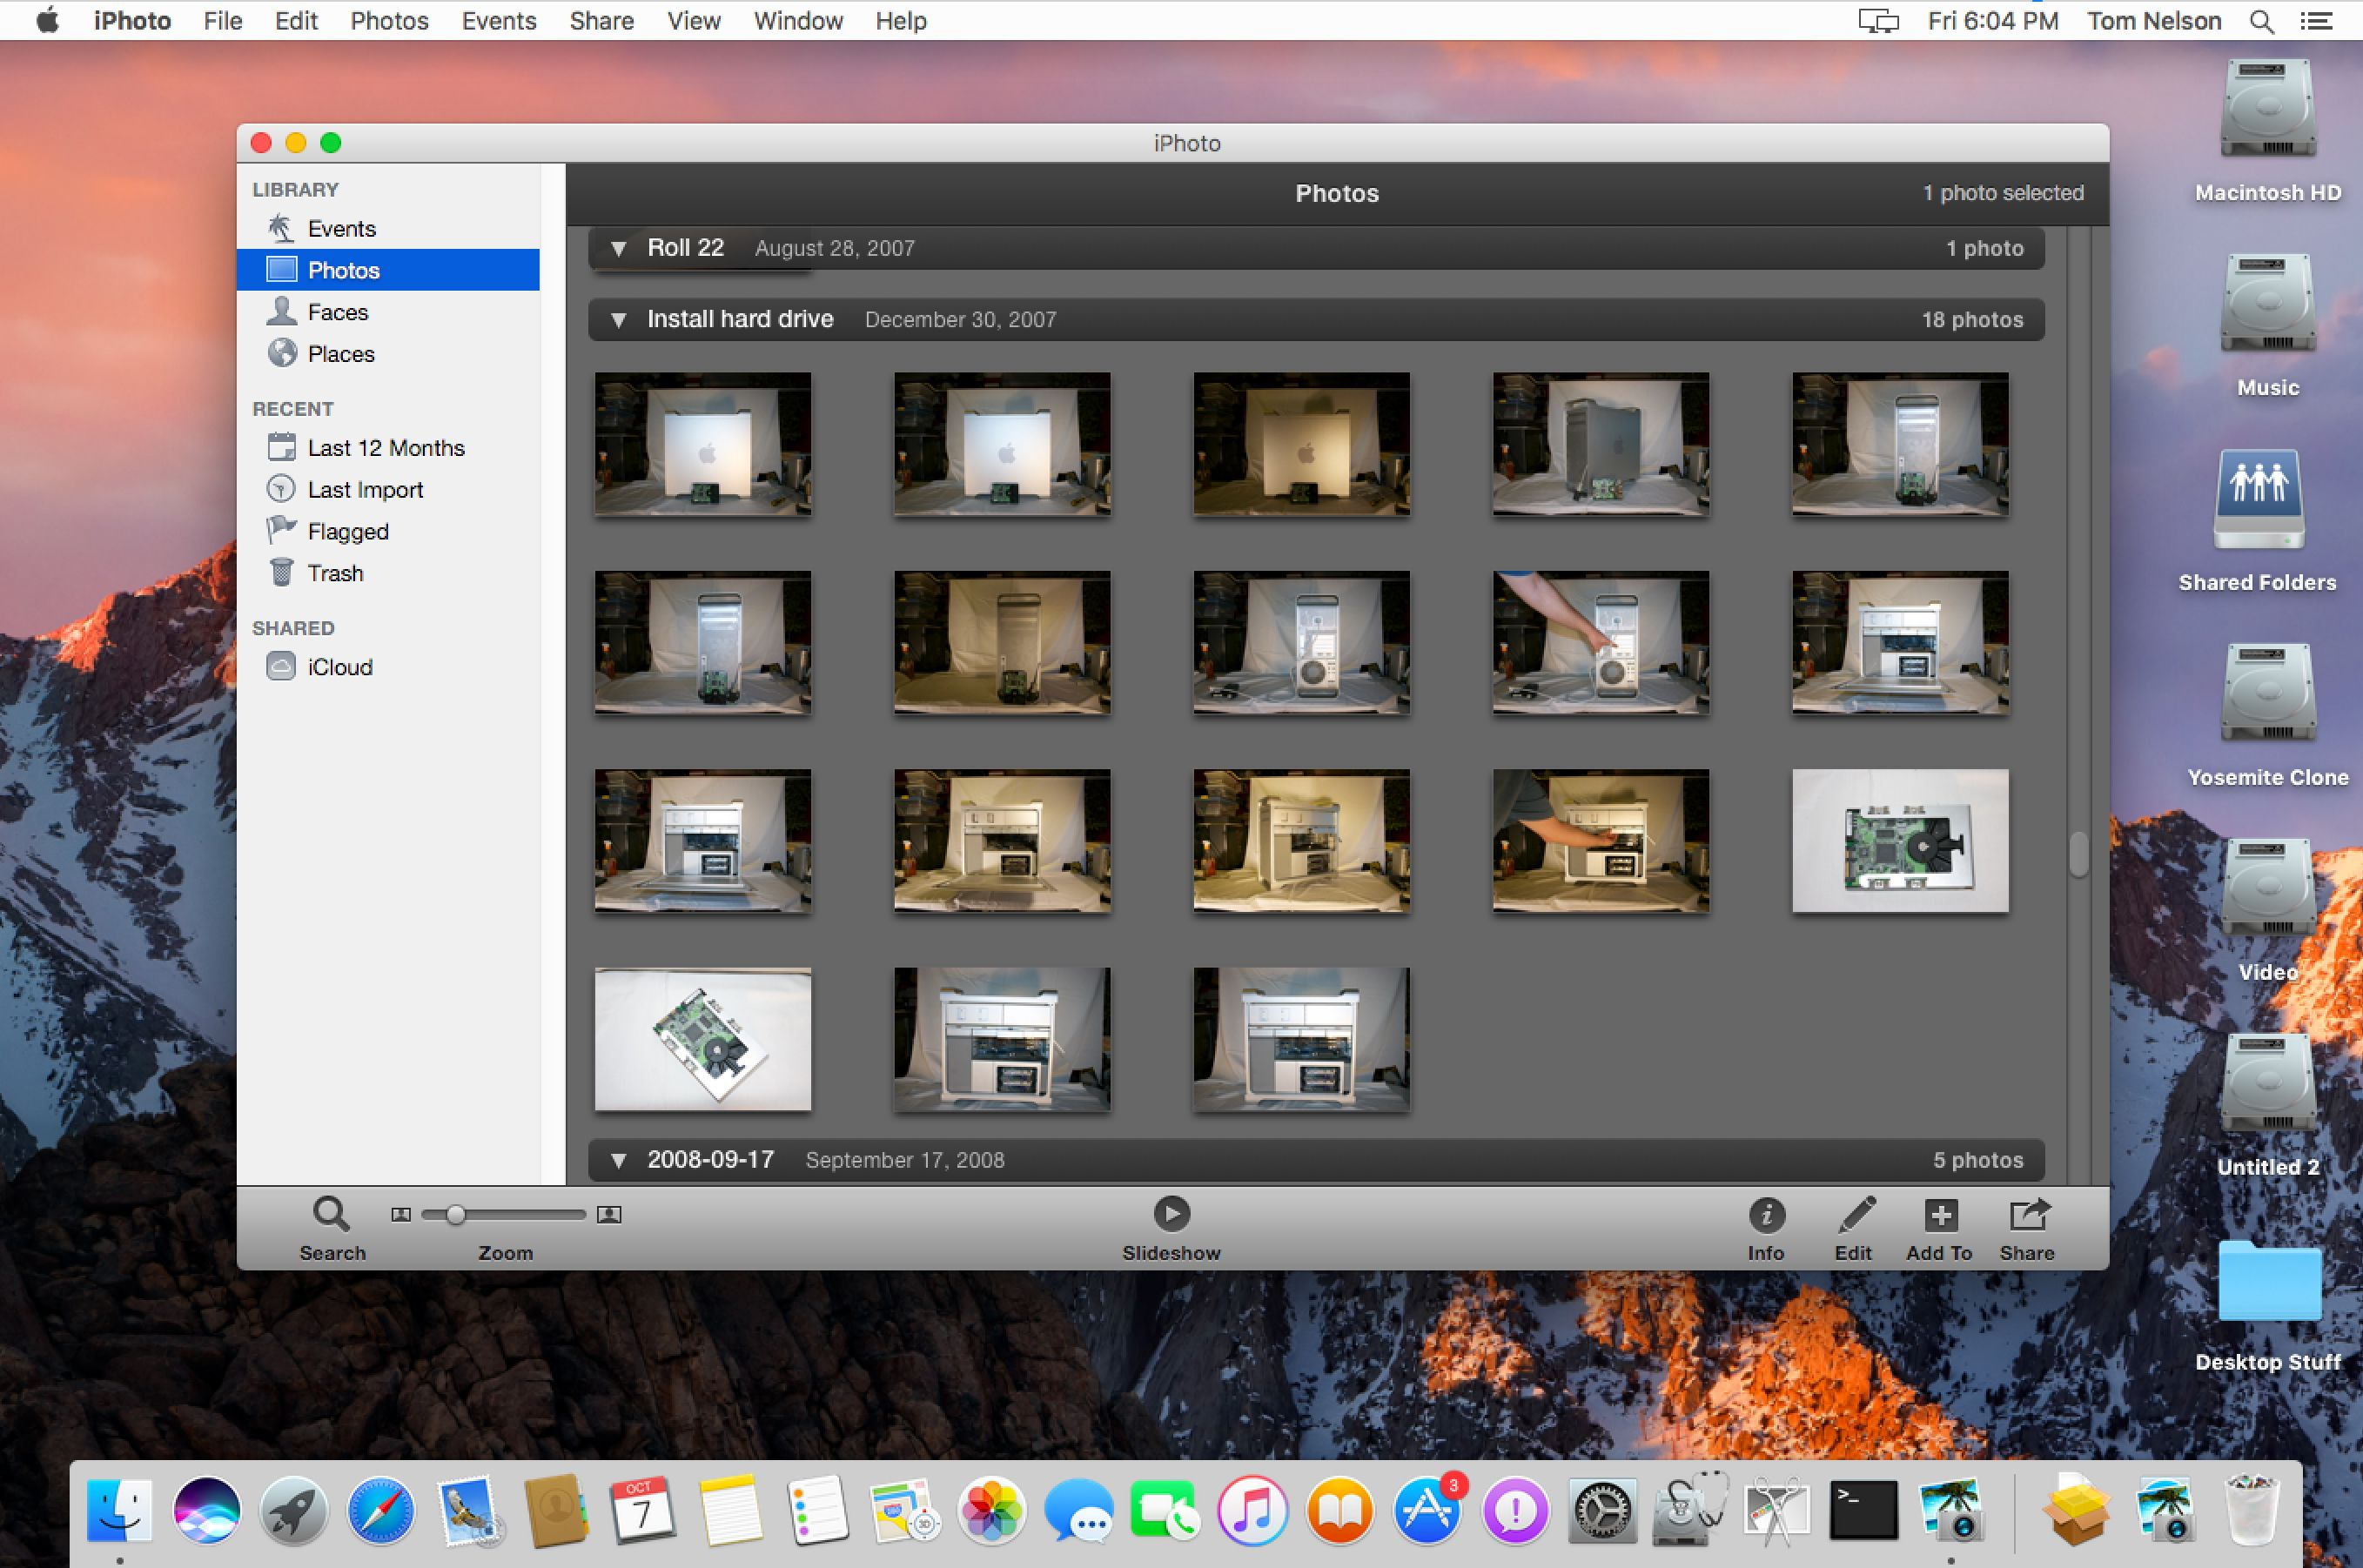 Iphoto tips and tricks tutorials and guides an easy way to upgrade to iphoto 11 baditri Images